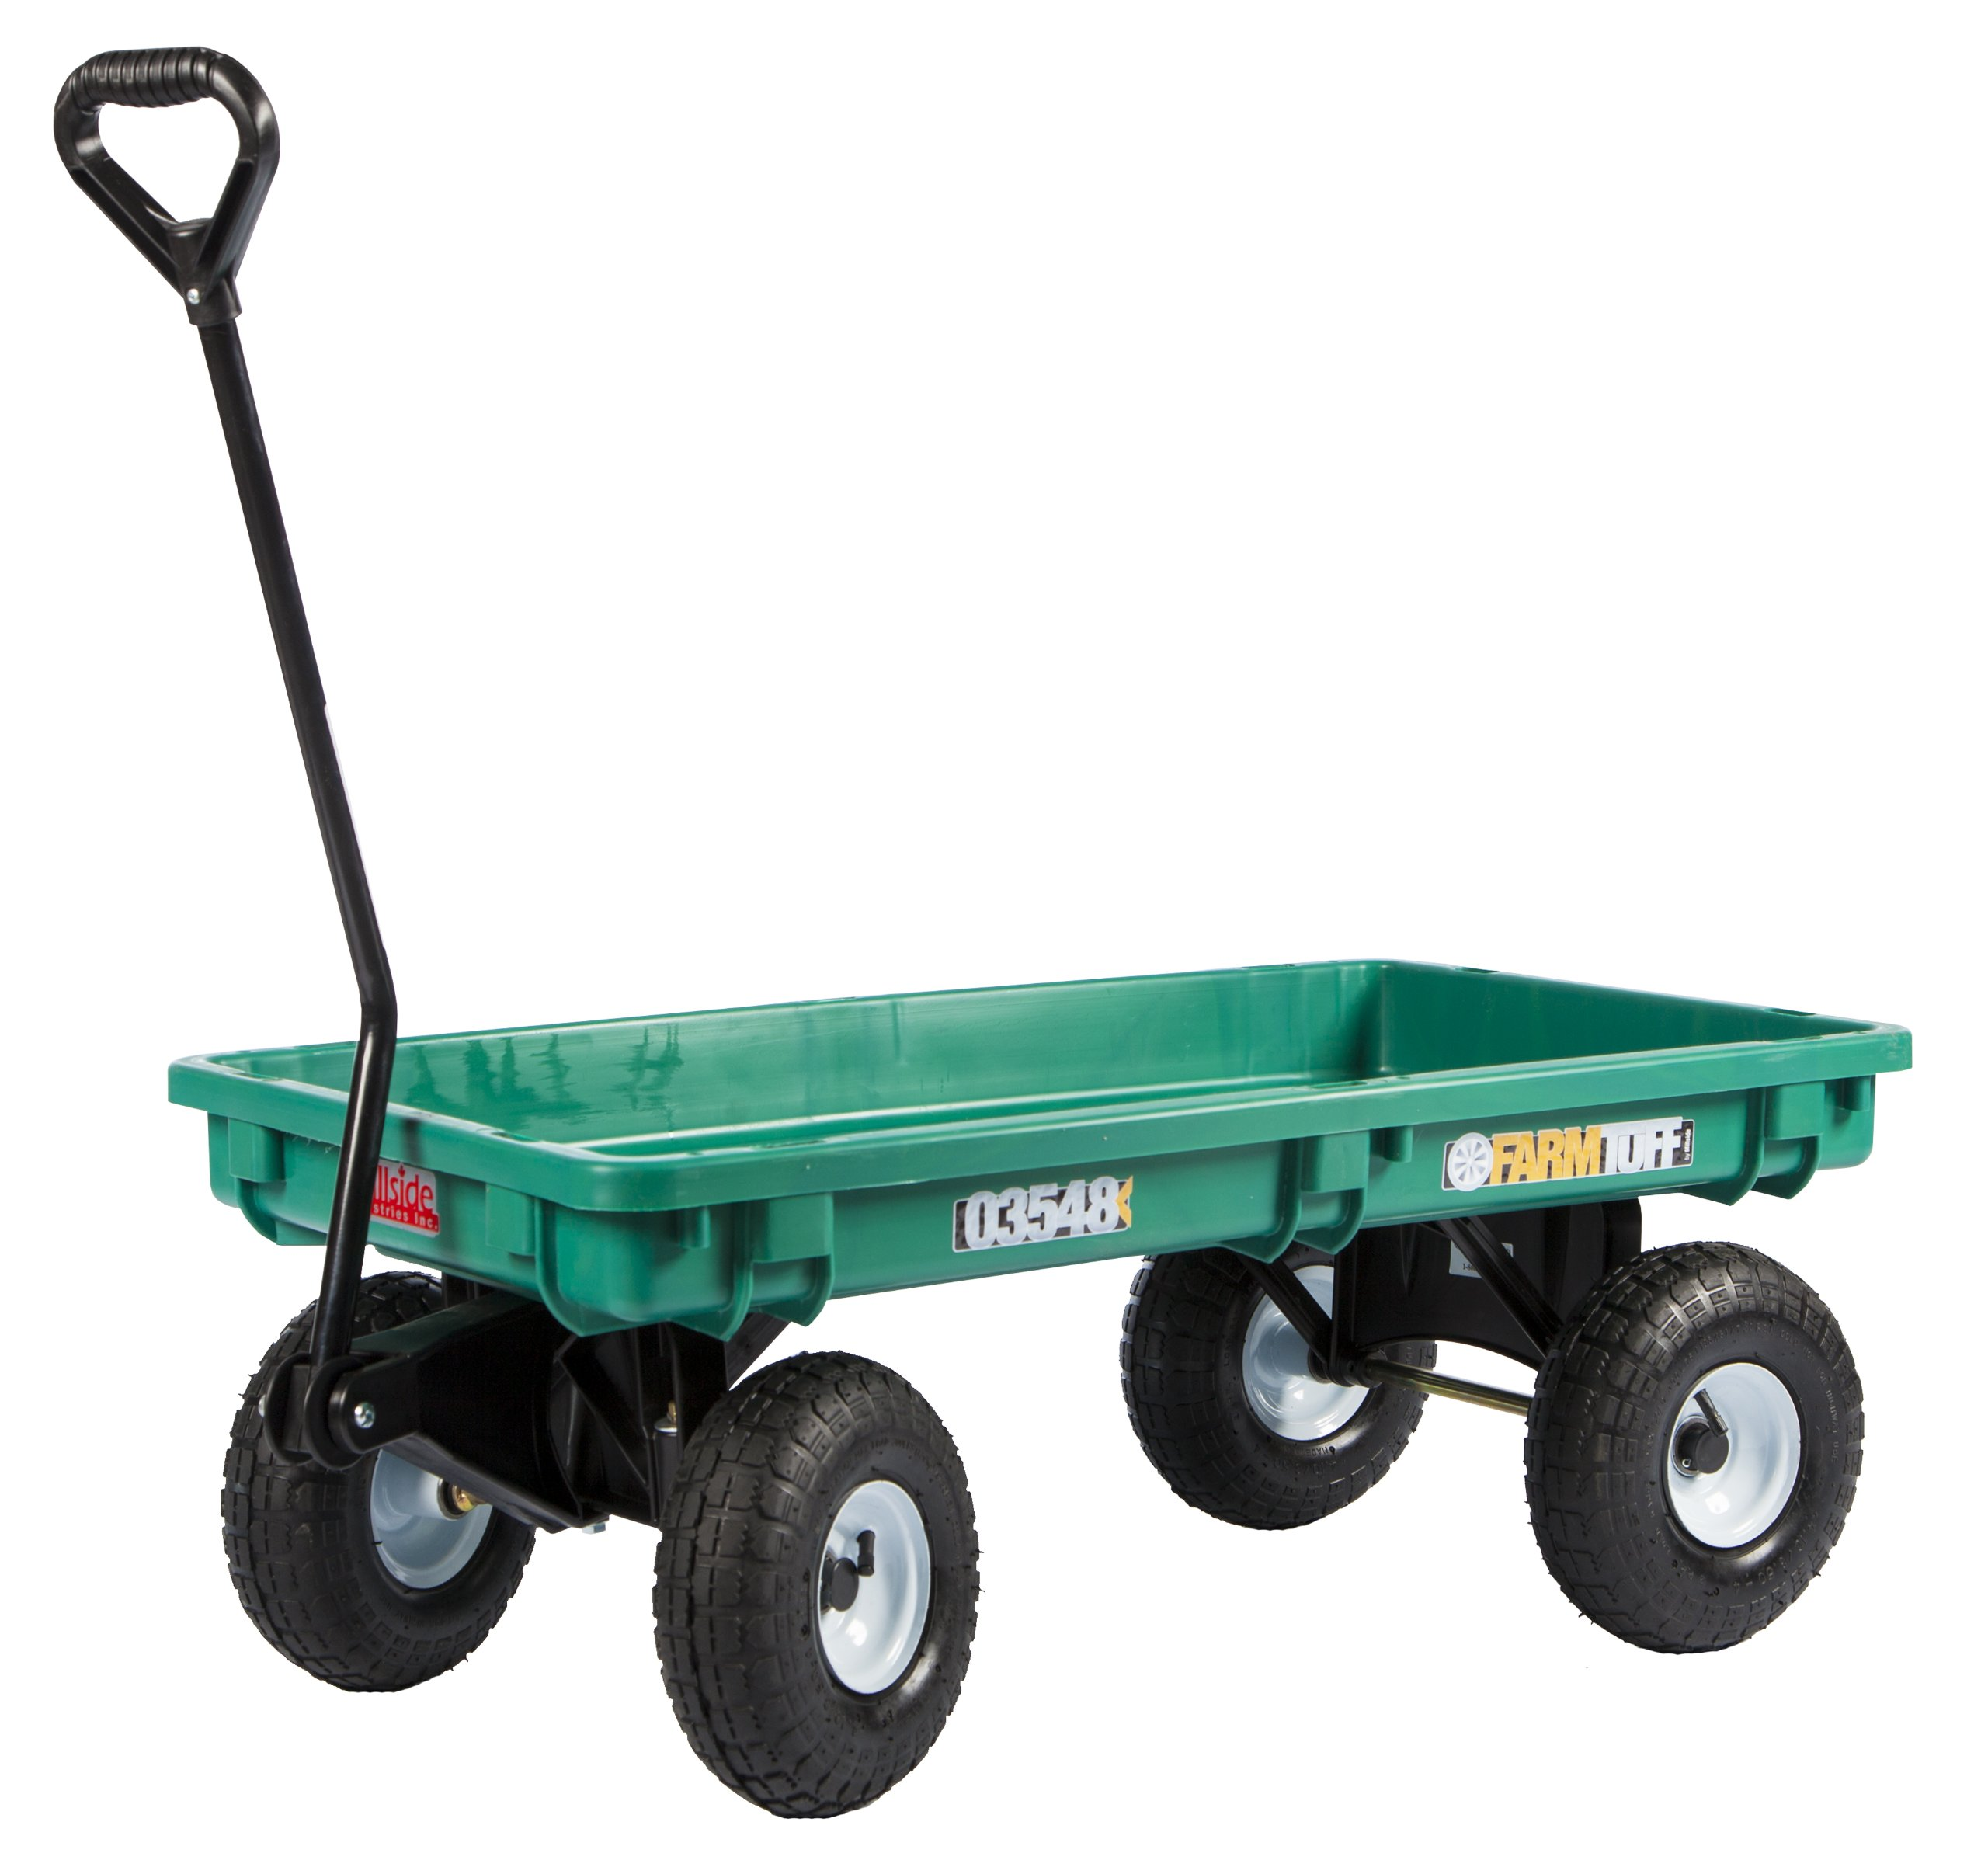 Farm Tuff Plastic Deck Wagon, 20-Inch by 38-Inch, Green